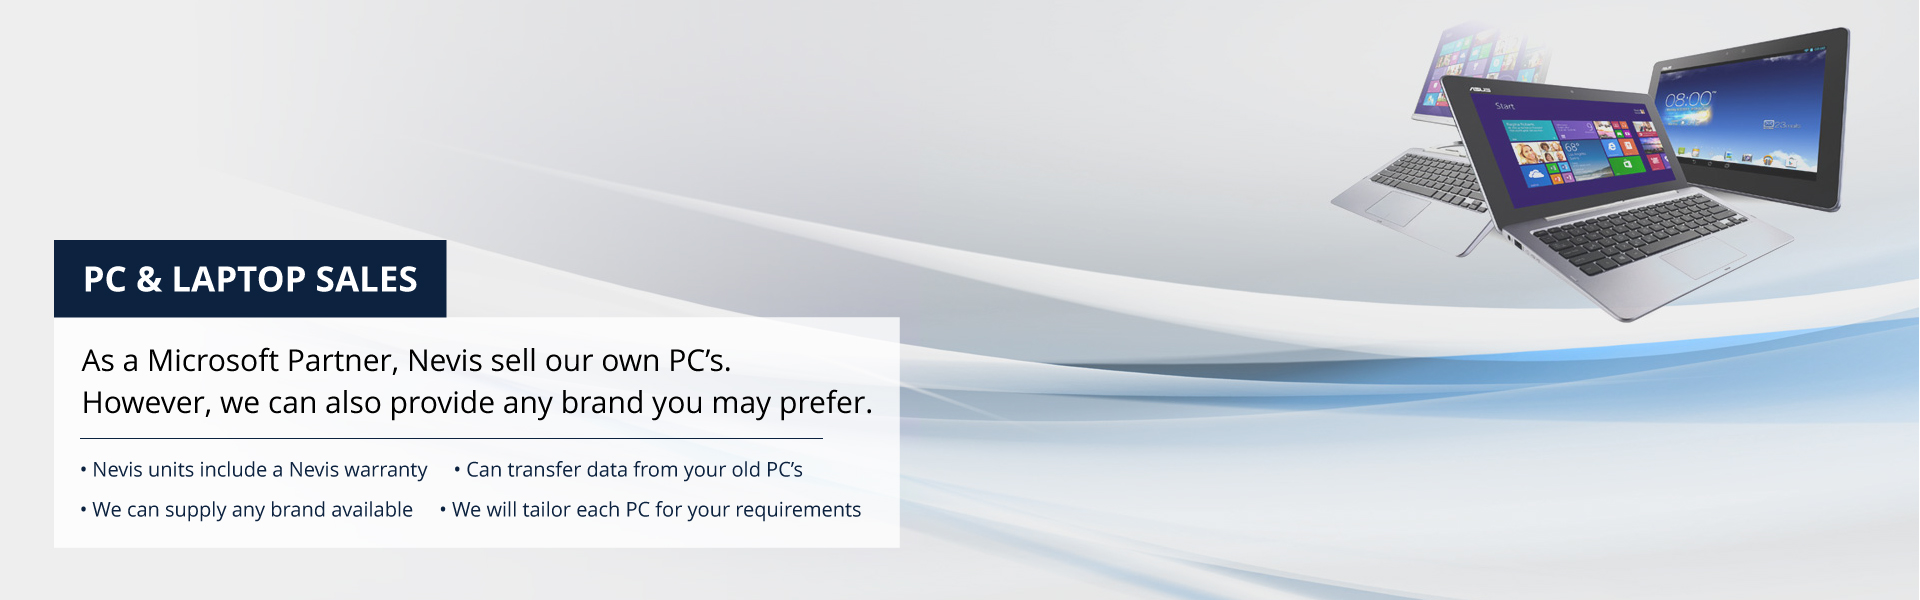 pc-and-laptop-sales-banner